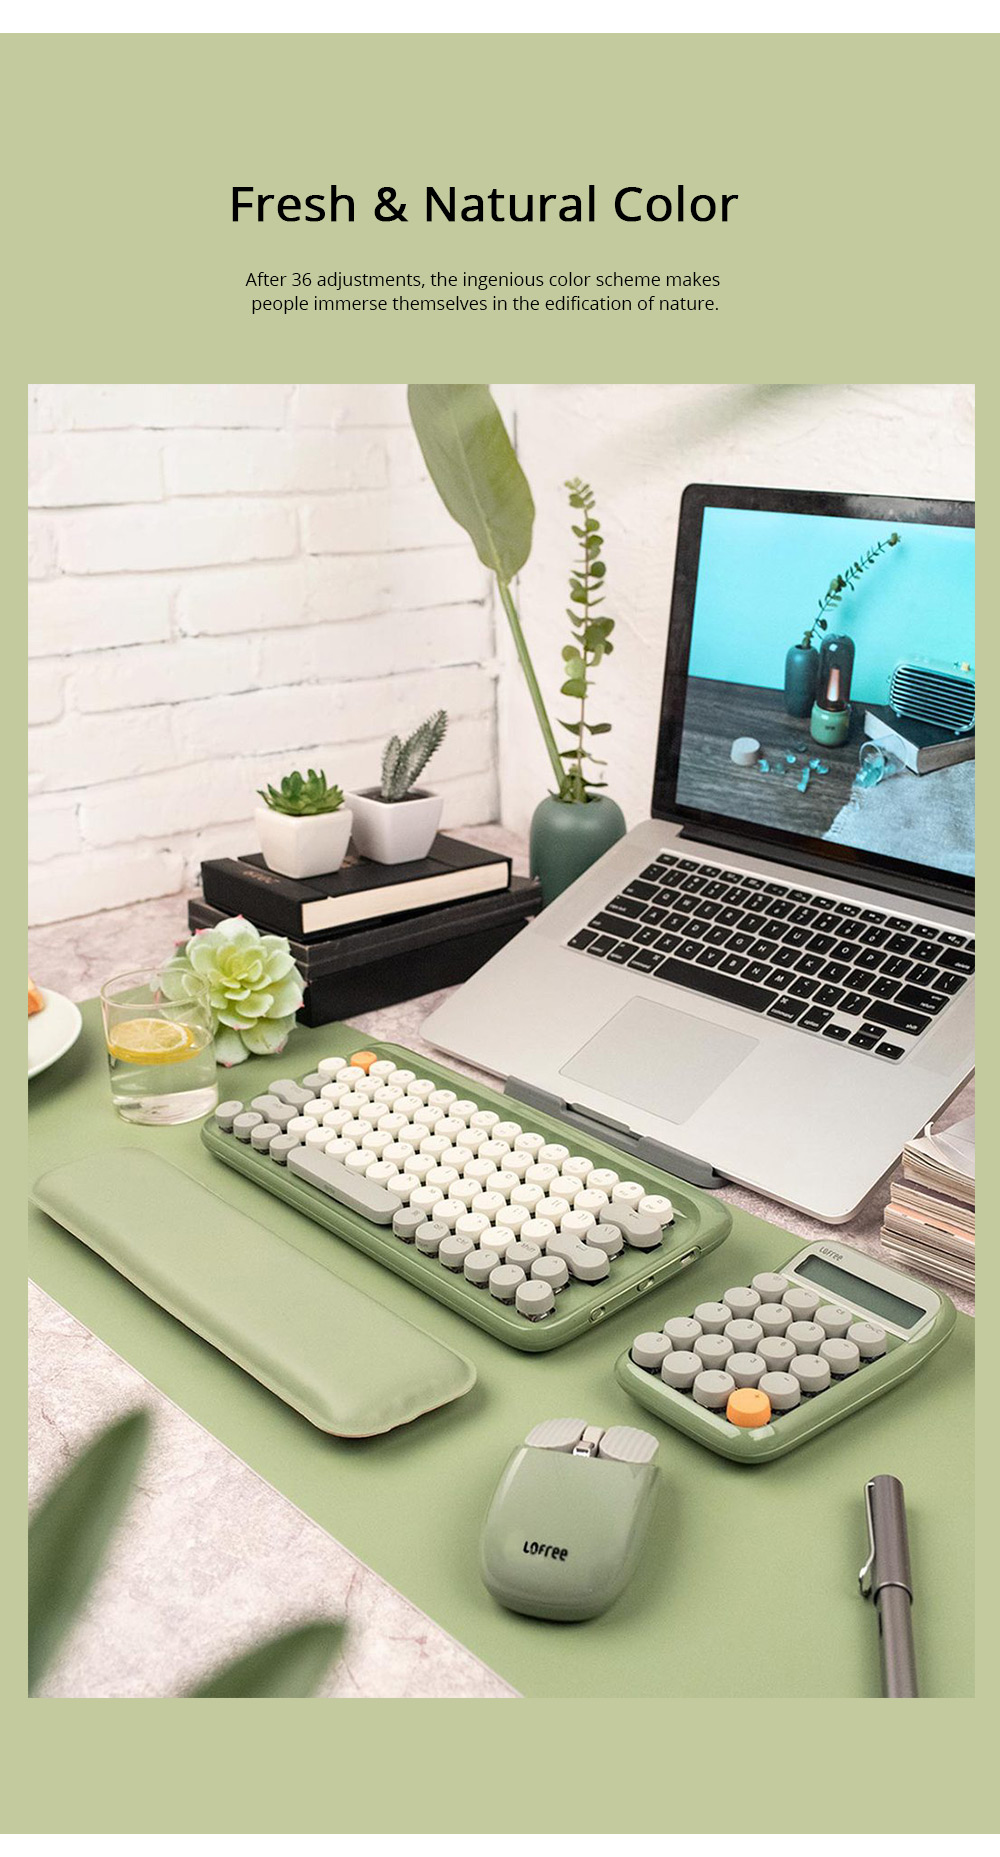 LOFREE 76 Keys Mouse Pad Set Mechanical Keyboard and Mouse with Ergonomic Wrist Rest Exquisite Calculator 4000mAh Lithium Battery 2